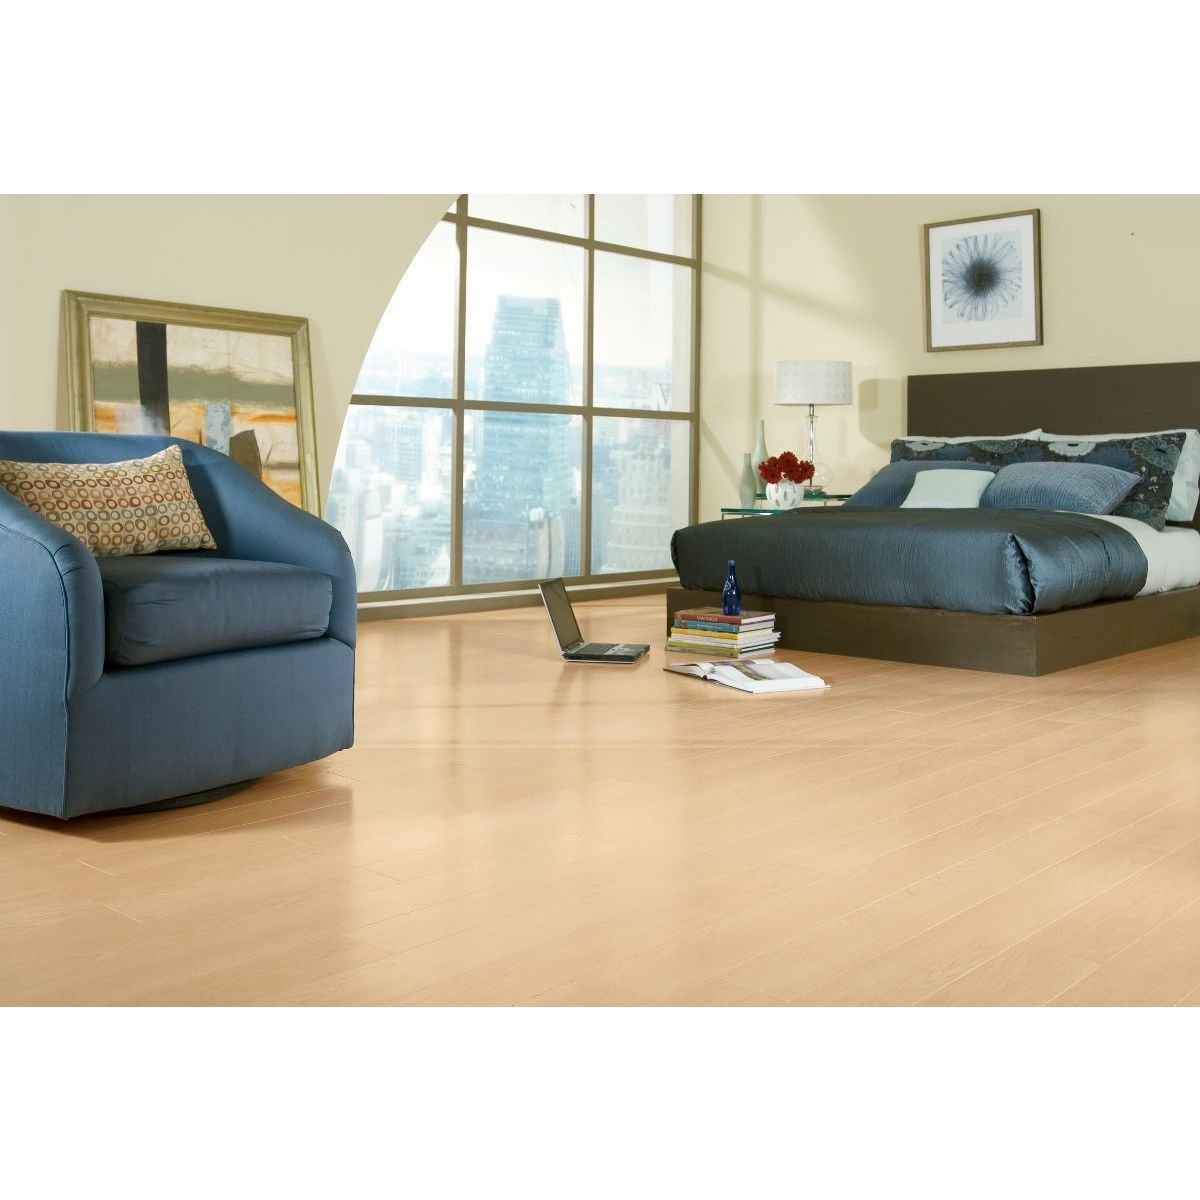 Armstrong Grand Illusions Laminate Flooring Case Of 13 05 Square Feet Canadian Maple Beige